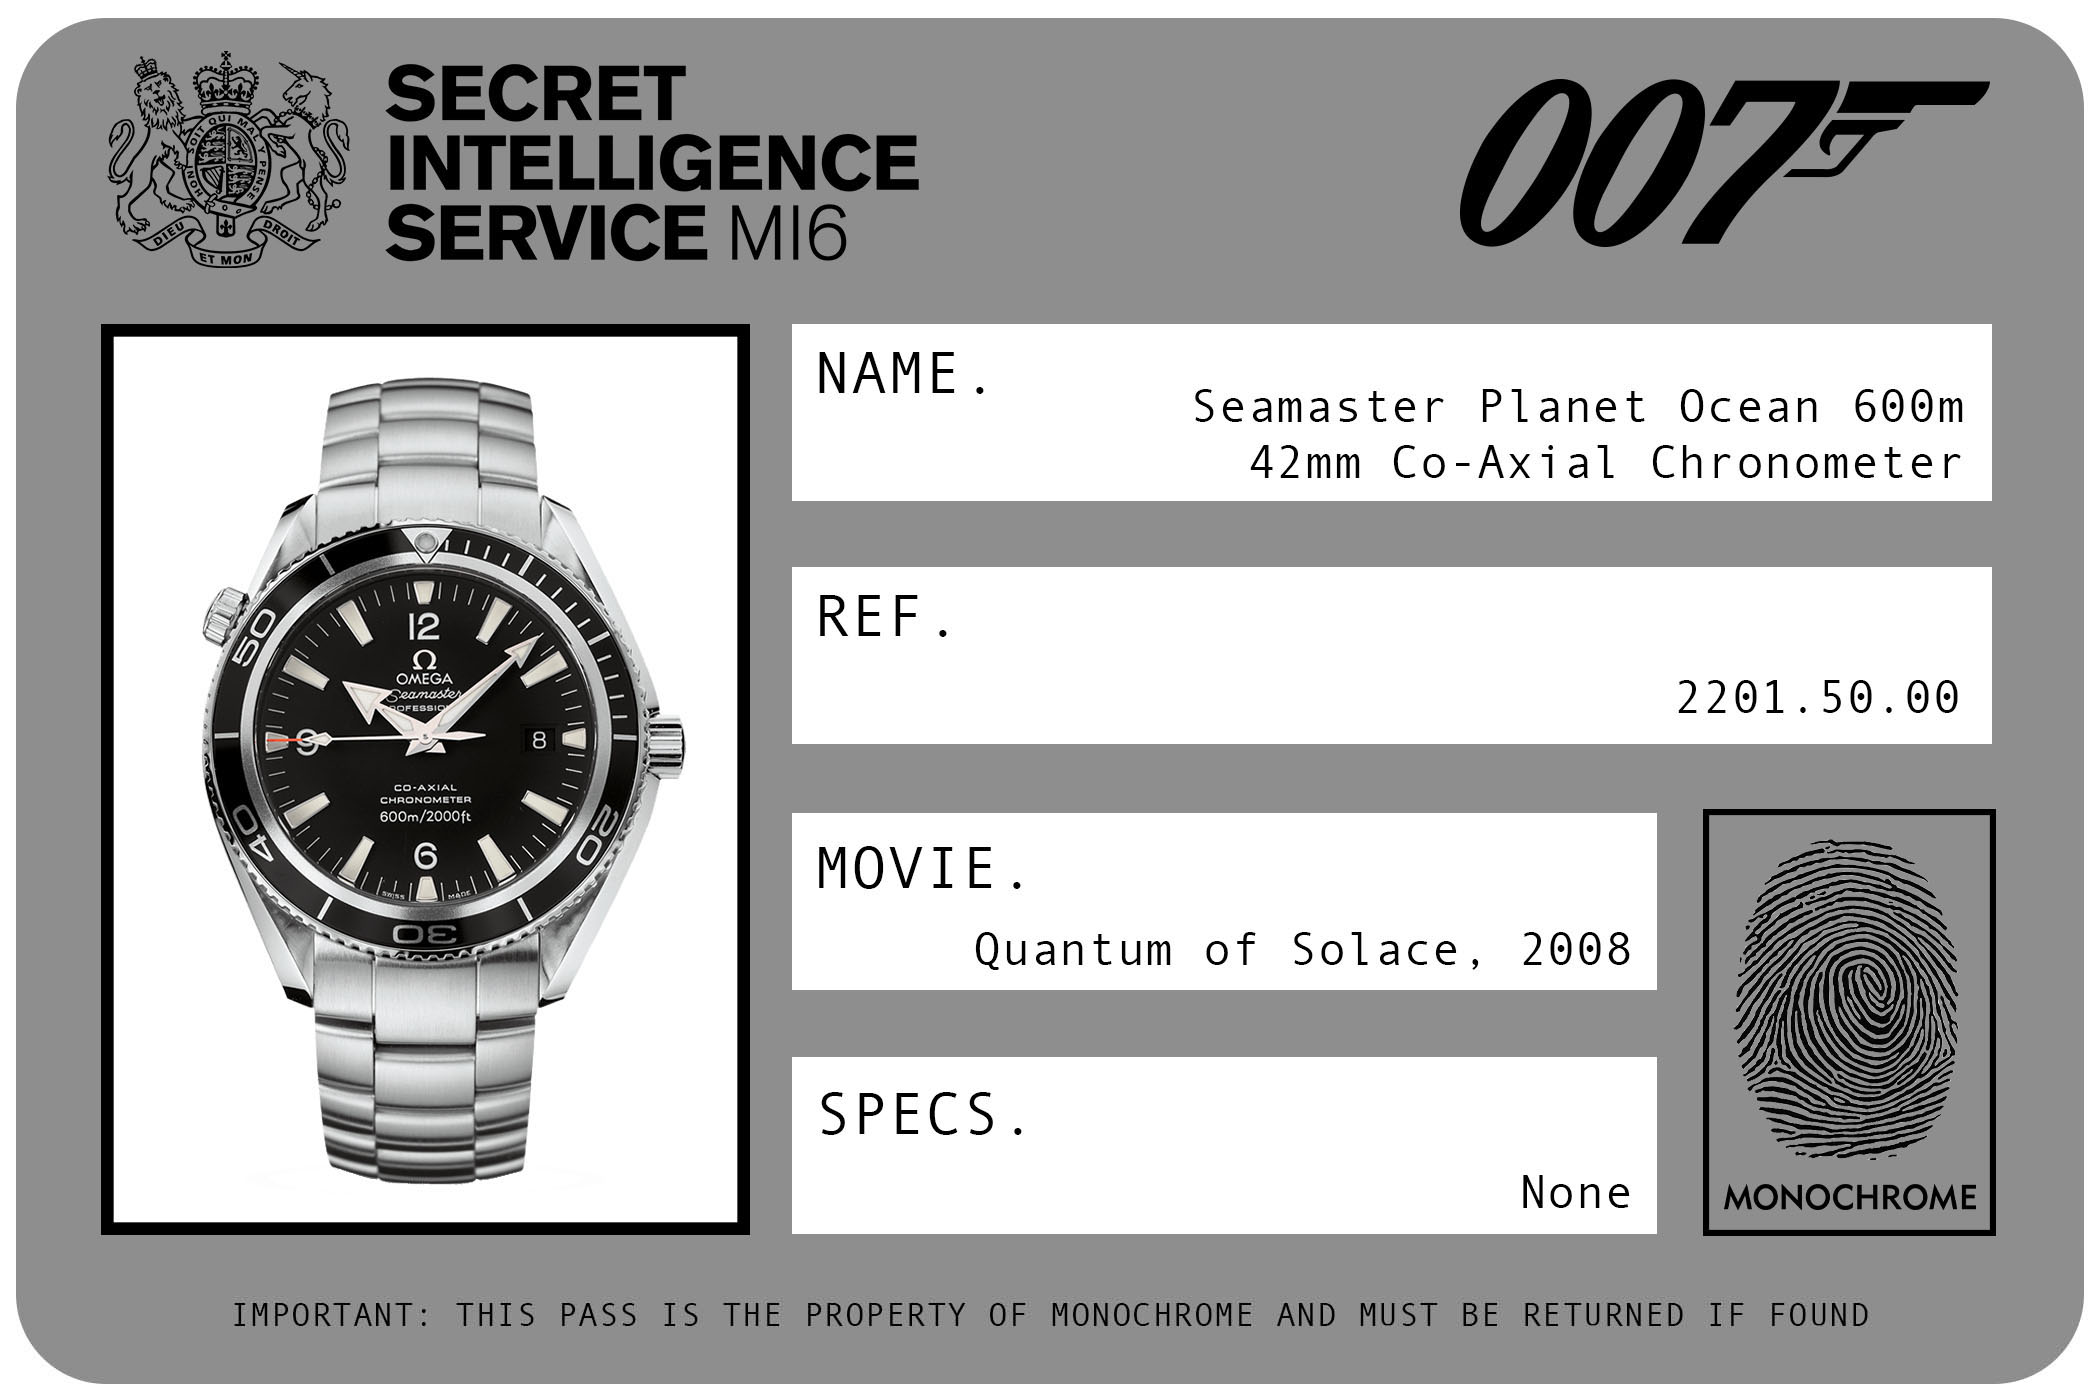 Omega Seamaster Planet Ocean 600m 42mm Co-Axial Chronometer 2201.50.50 James Bond Quantum of Solace ID Card 2008